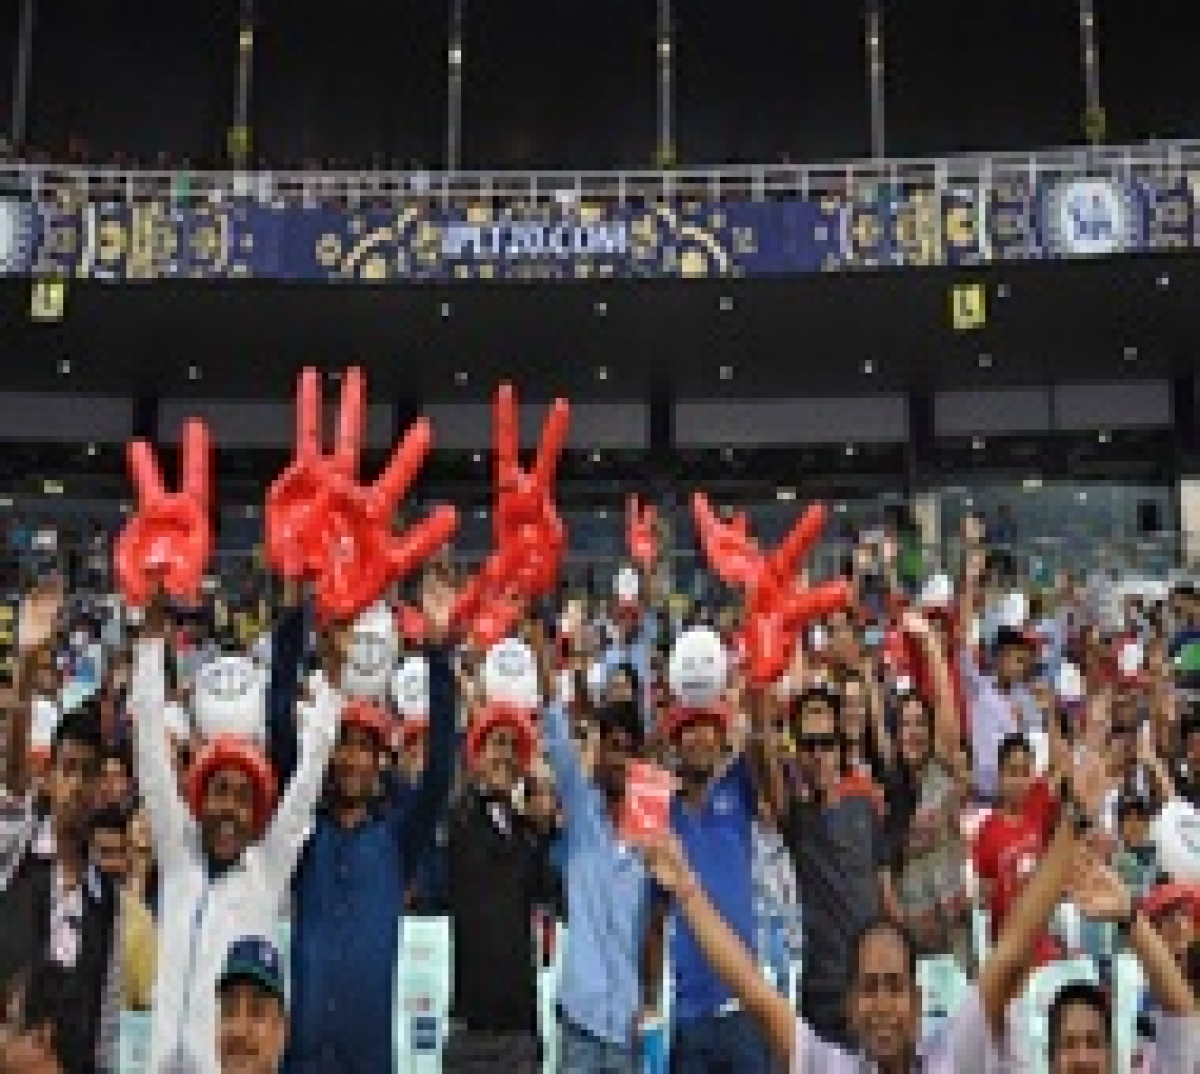 Eden to have new drinking water vendor from next IPL game